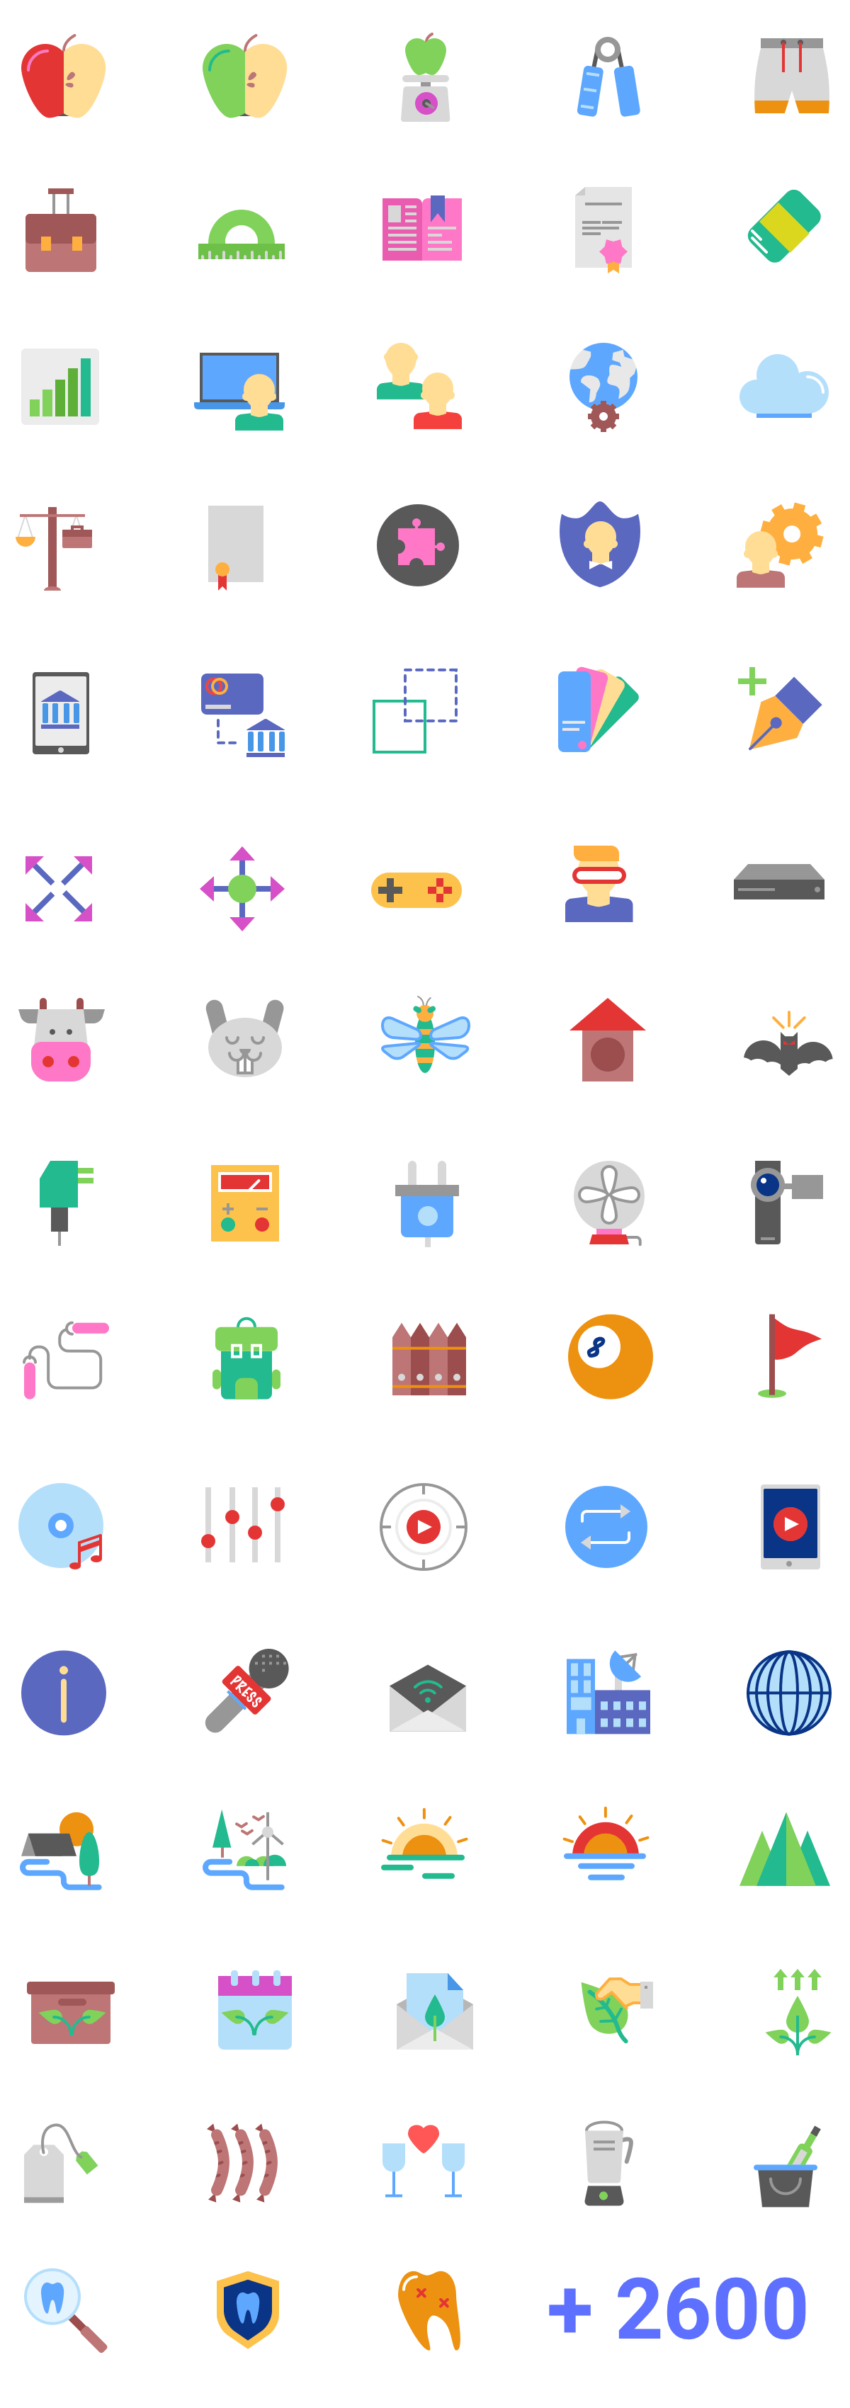 Magicons - 2687 Flat Icons (.Eps + .Sketch + .Png + .Svg) скачать бесплатно